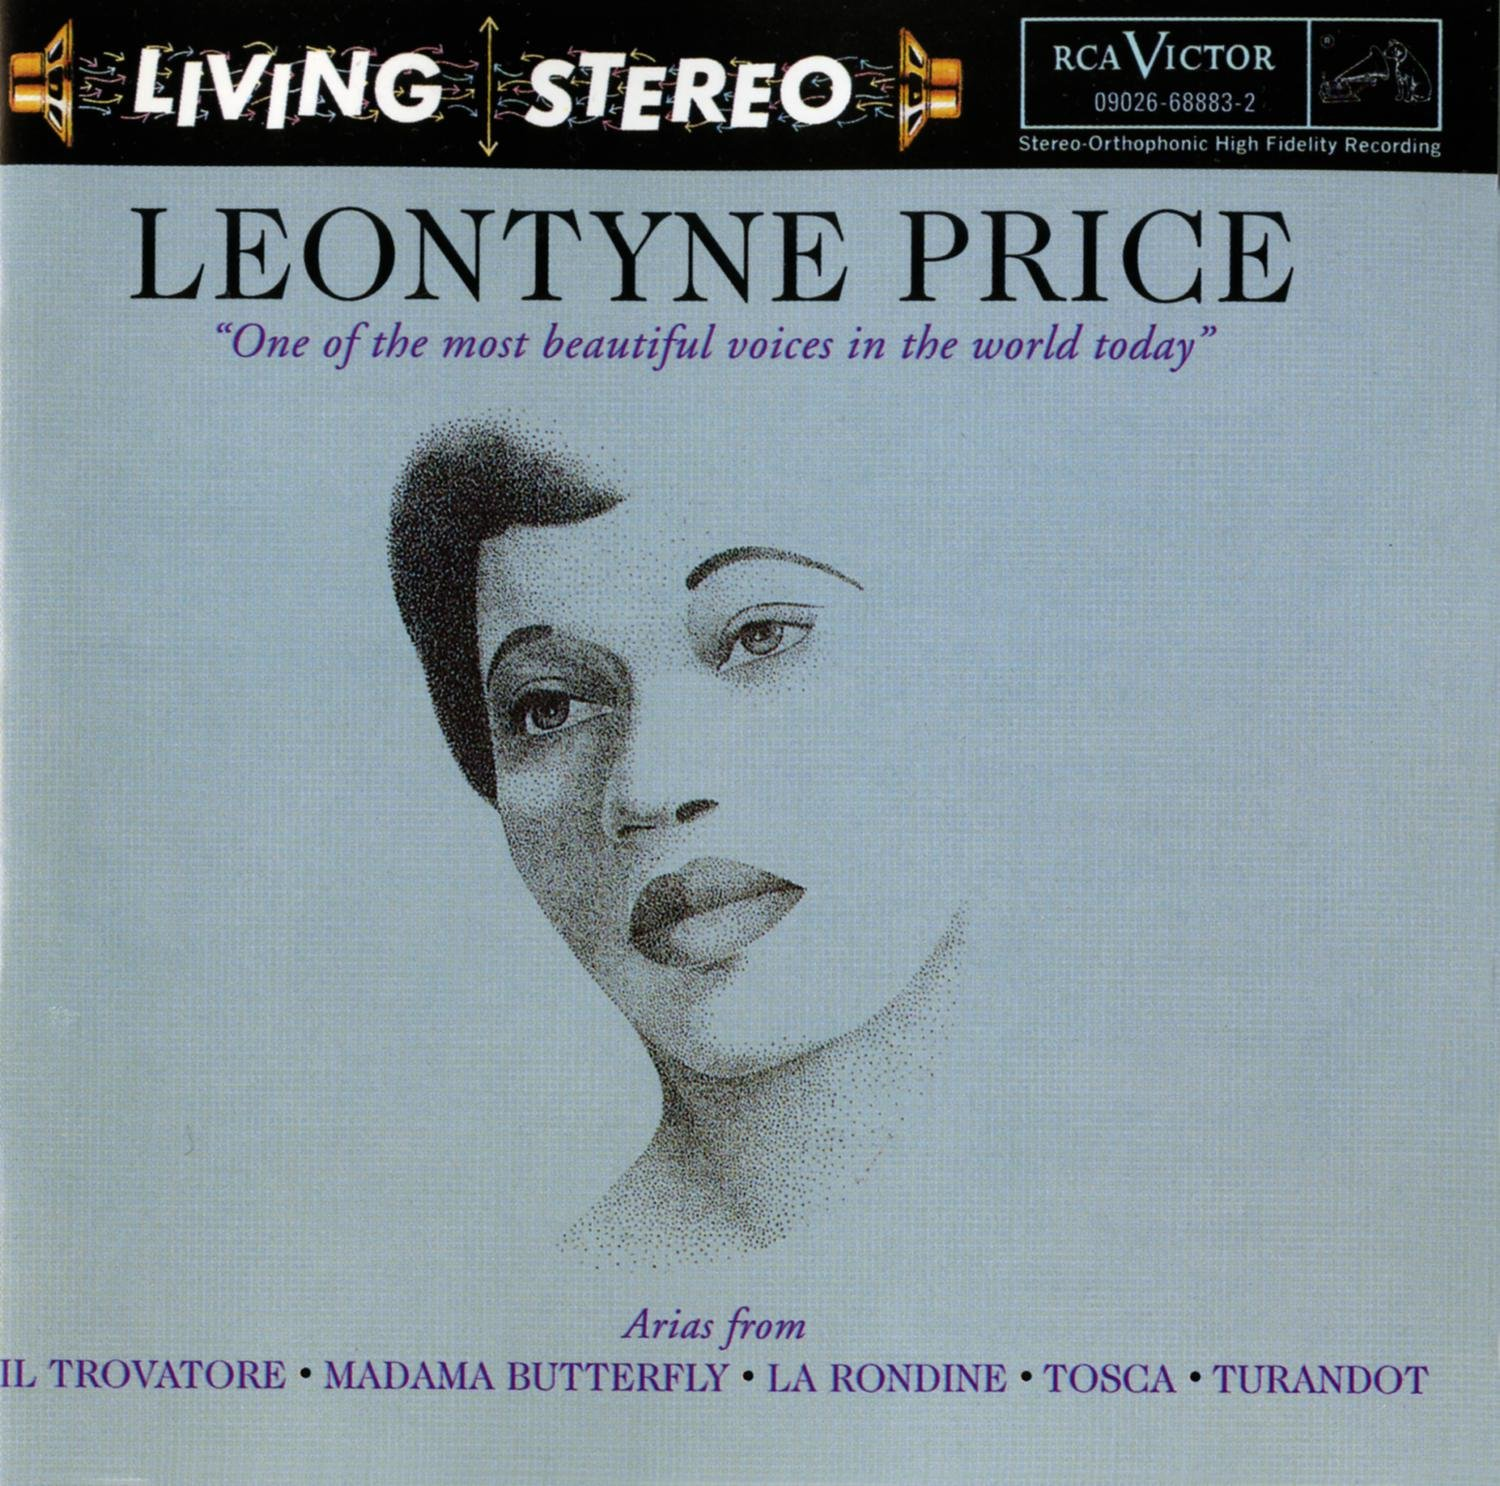 Leontyne Price: Arias from Verdi and Puccini